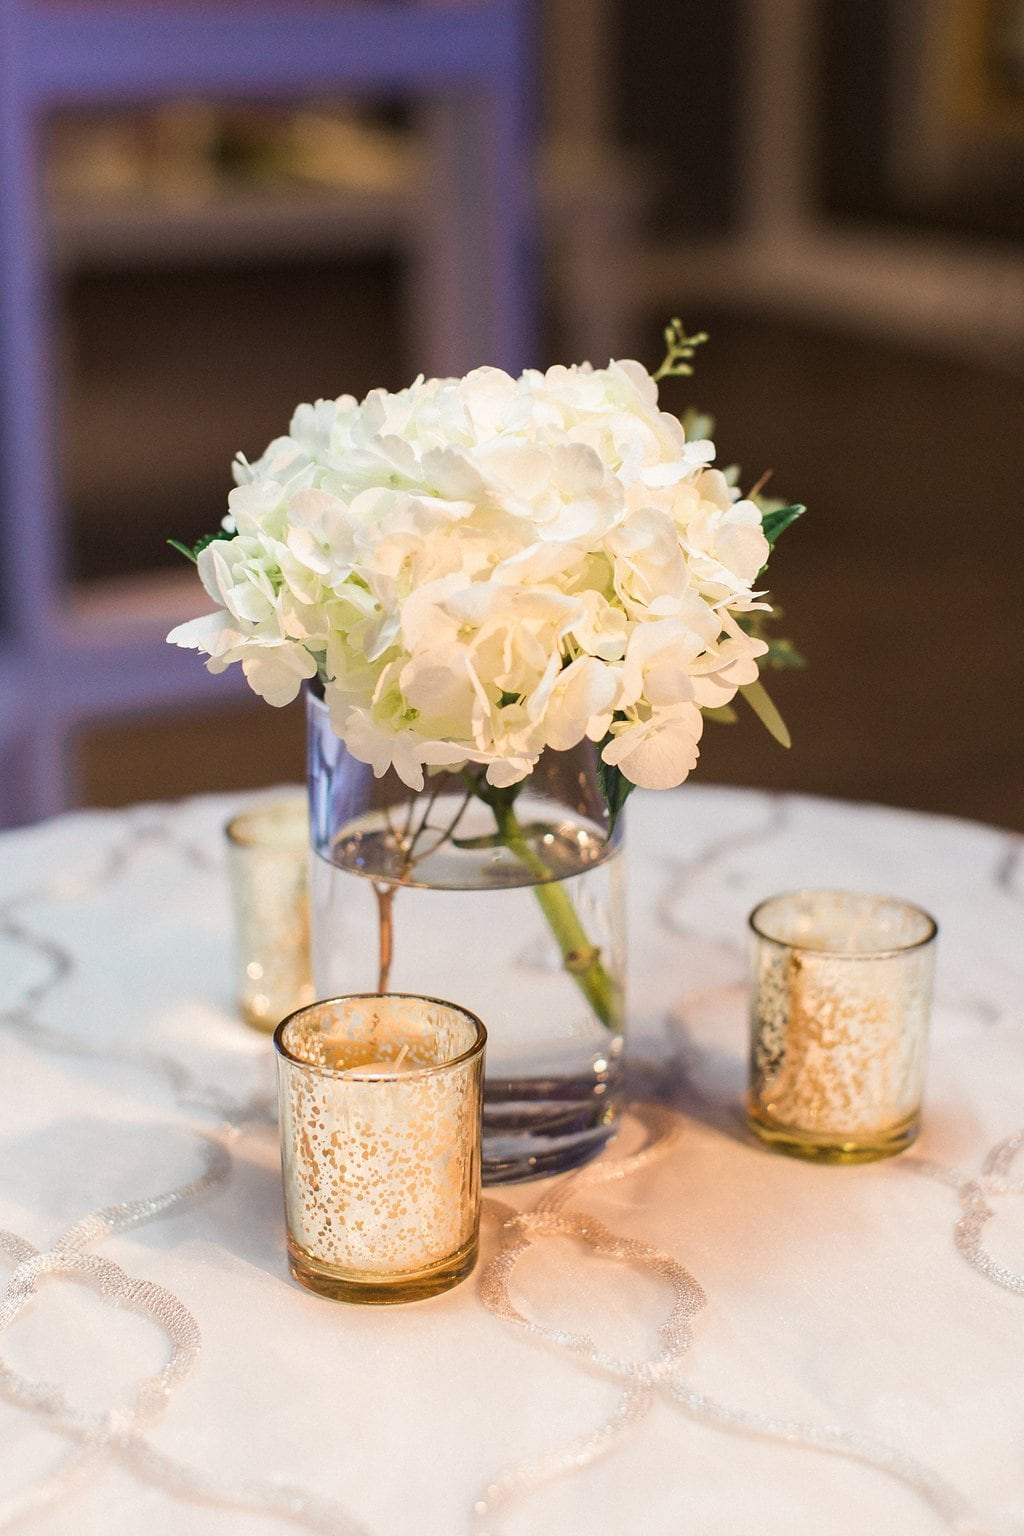 Cocktail details flowers and votive candles during reception